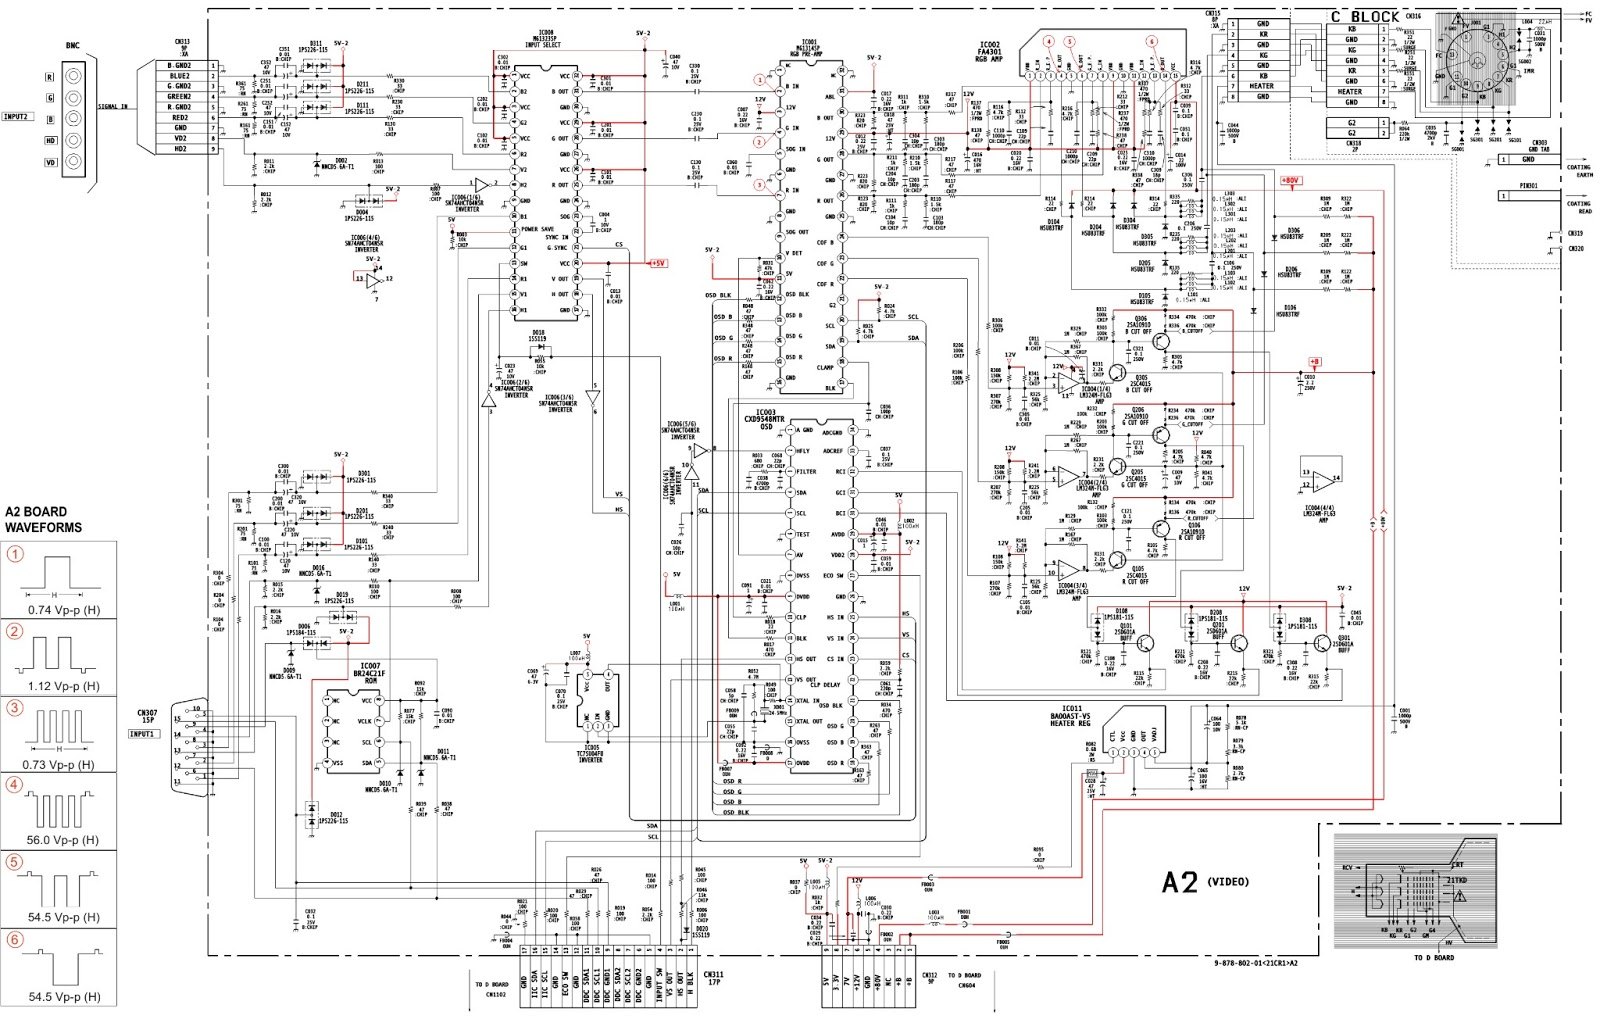 Playstation 3 Block Diagram - Wiring Diagrams User on